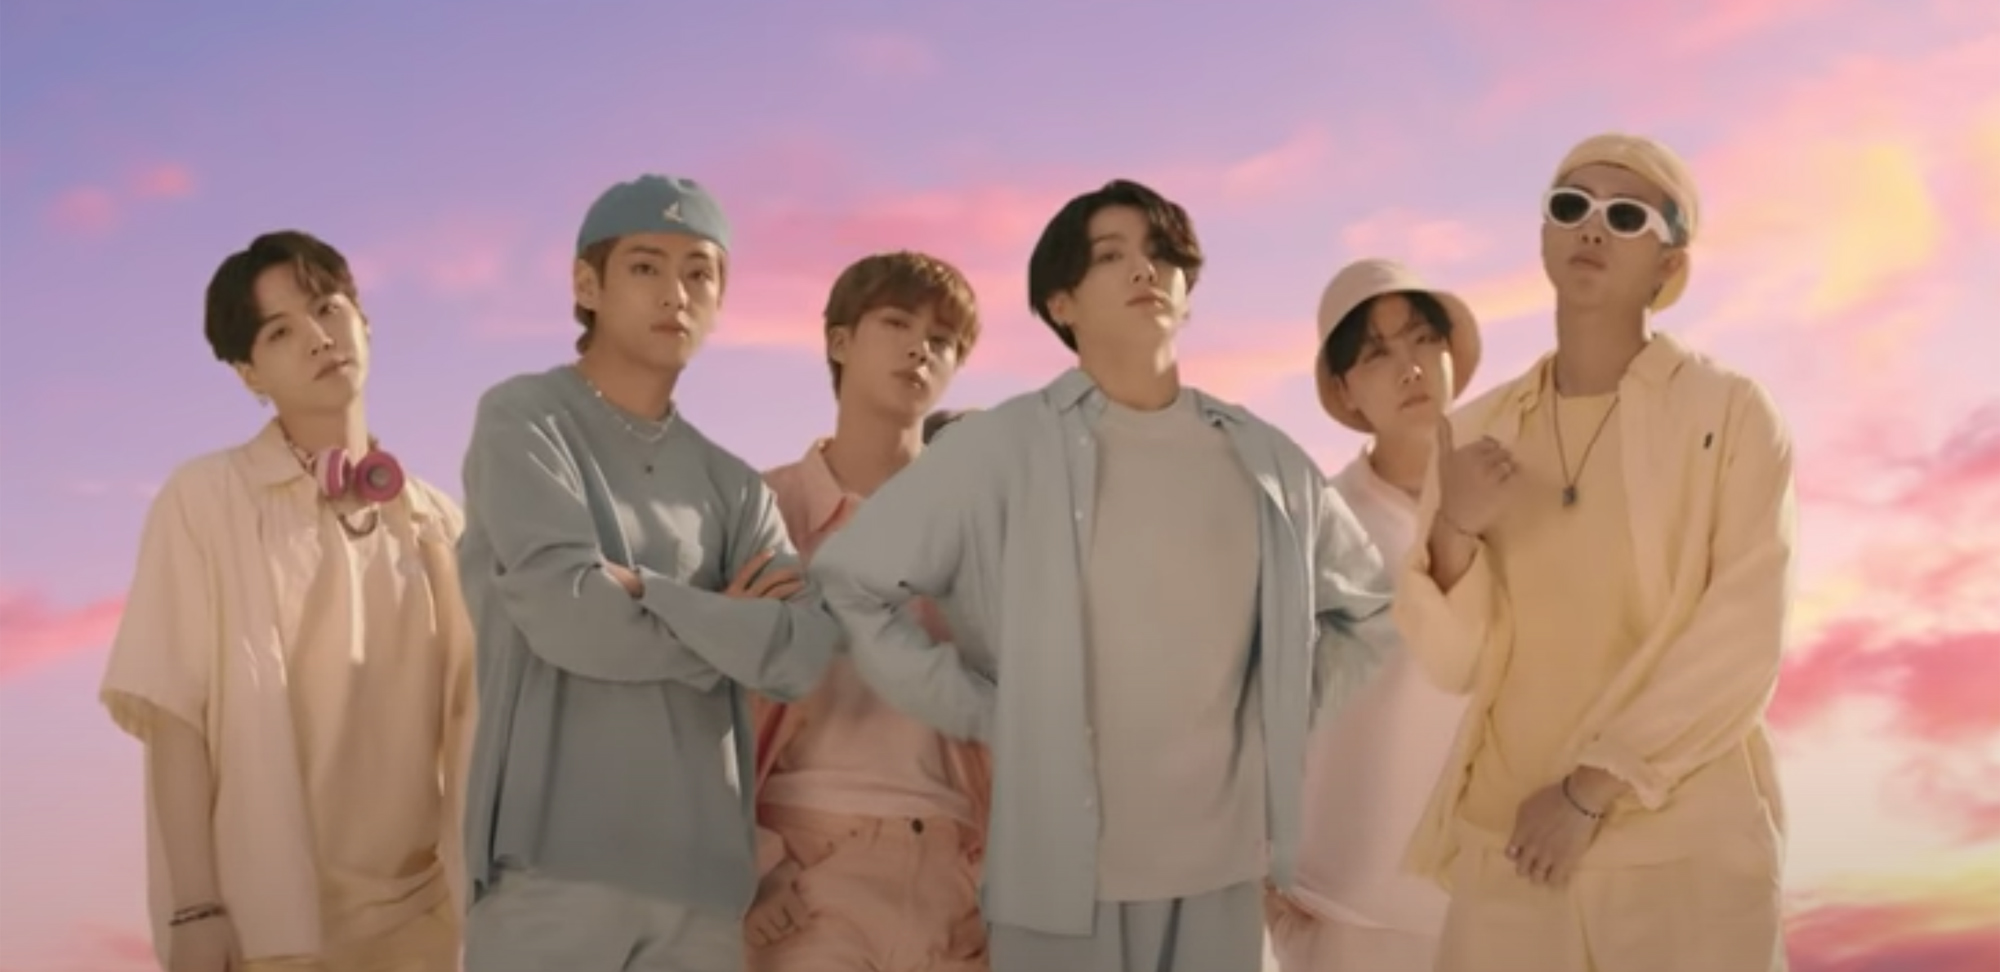 Bts First South Korean Band No 1 On Billboard Hot 100 Chart People Com